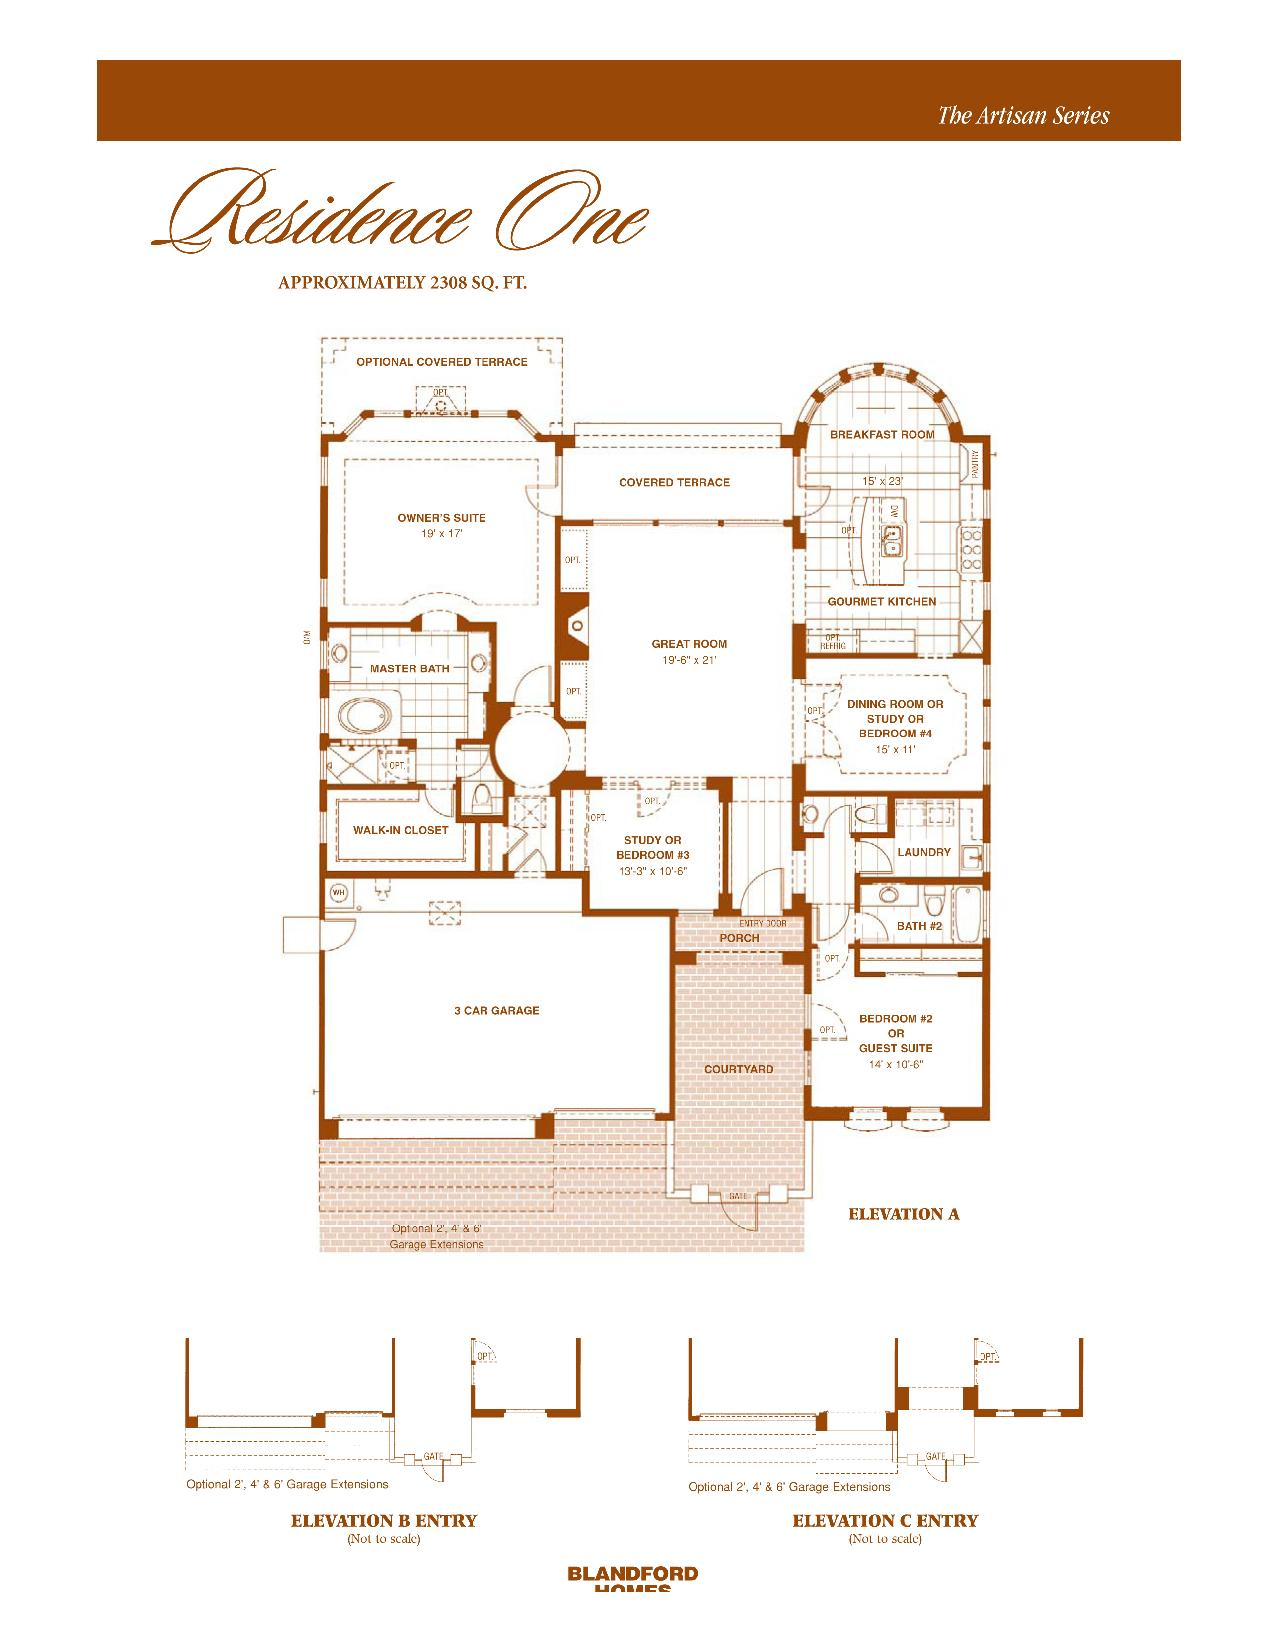 Artisan Res. One 2308 SQ FT